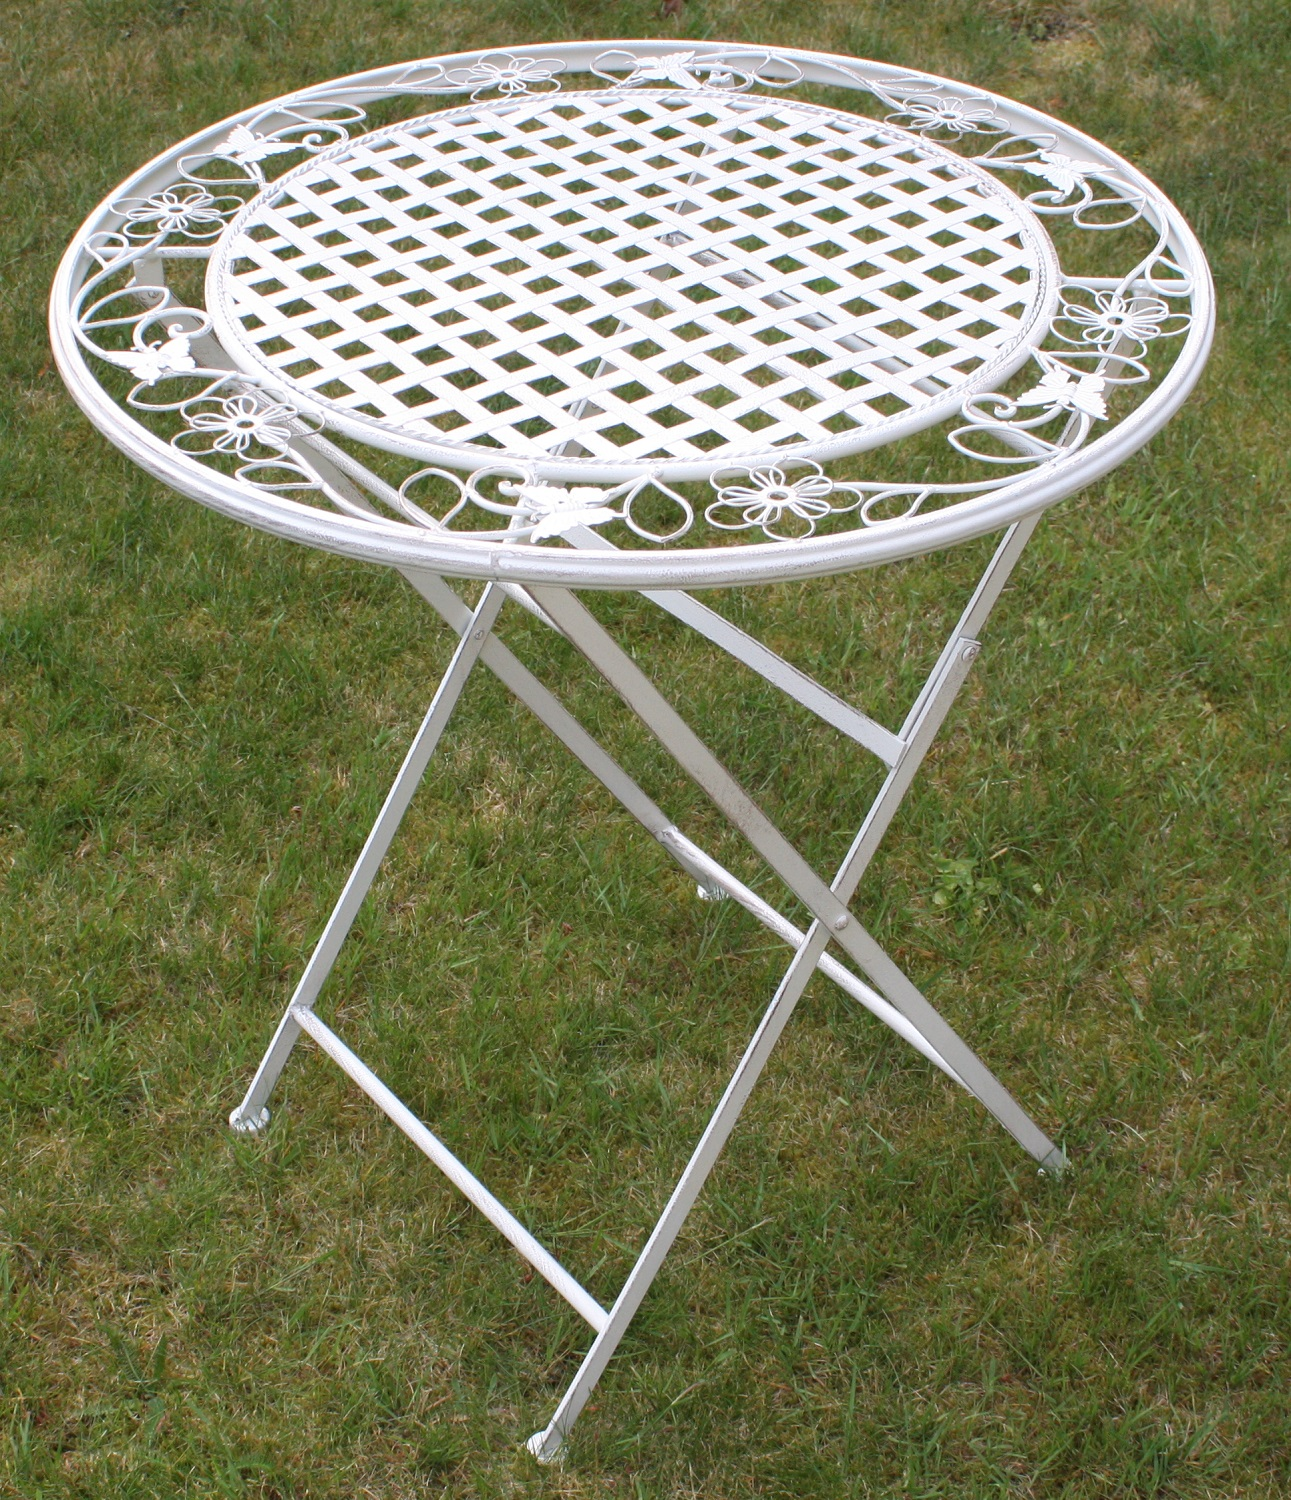 Maribelle Folding Metal Garden Table Furniture Outdoor Value